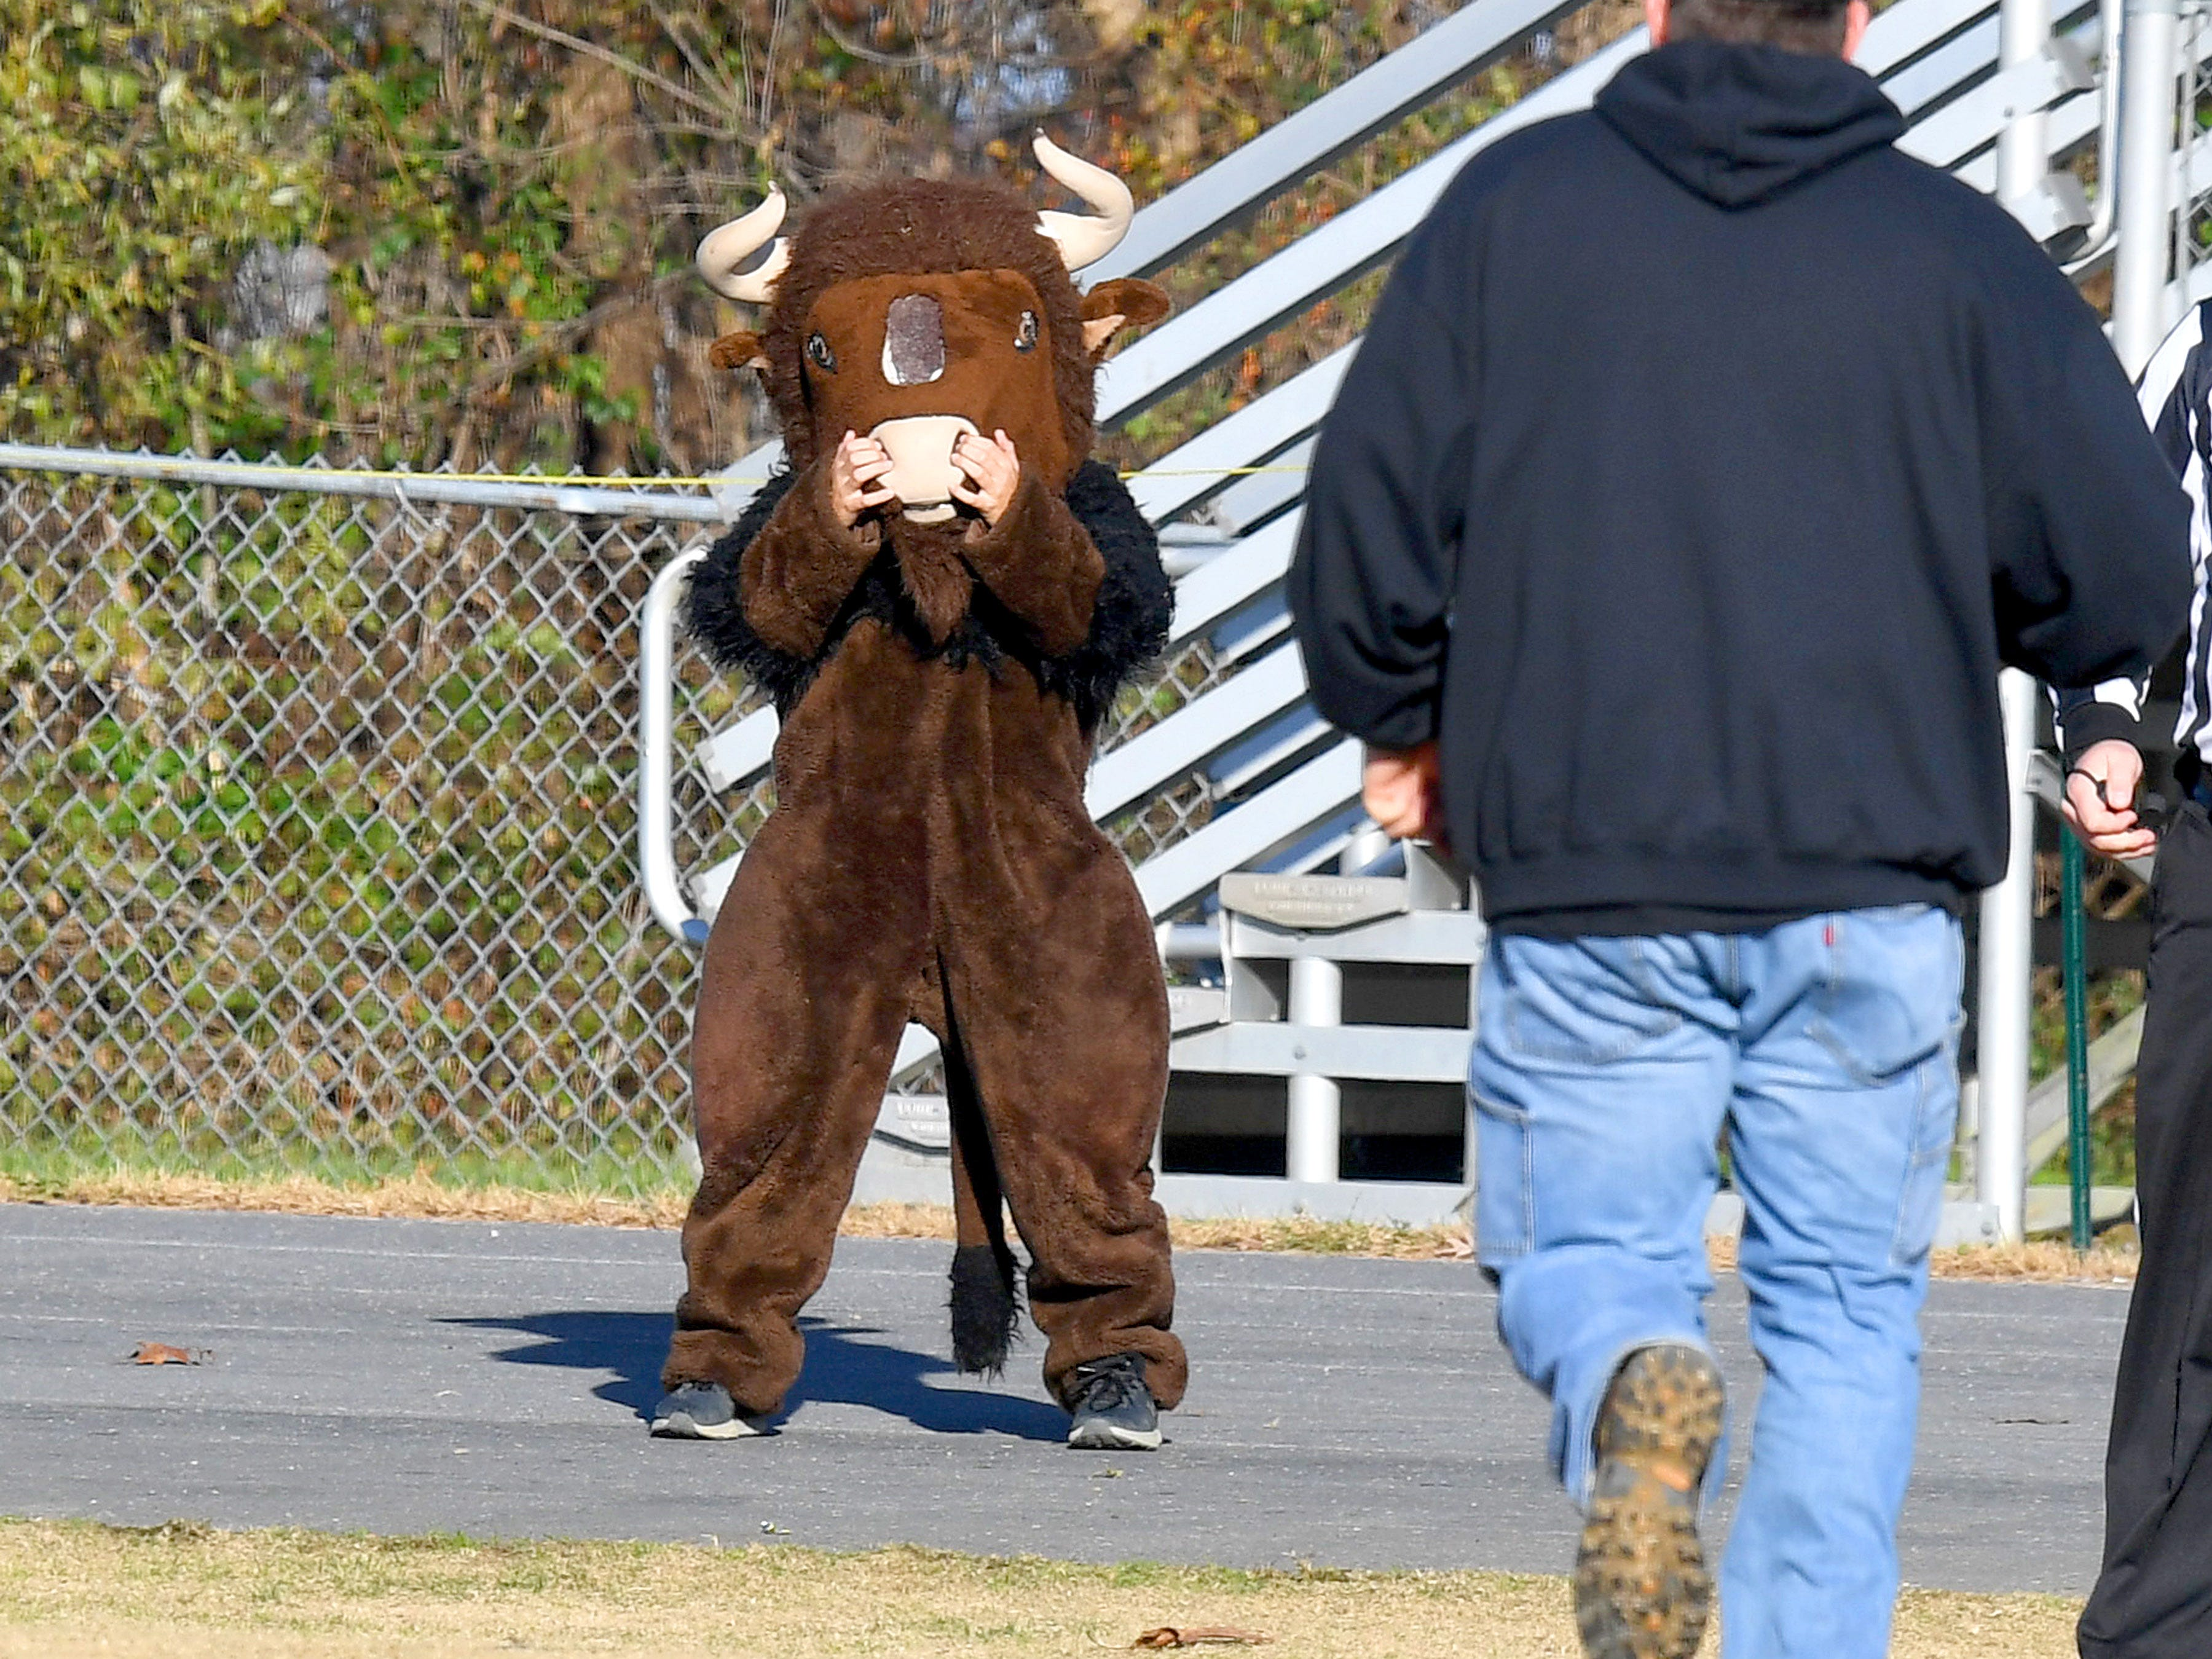 Buffalo Gap mascot cheers from their sidelines during the Augusta County Quarterback Club Midget Super Bowl in Fishersville on Sunday, Nov. 11, 2018. Riverheads beat Buffalo Gap, 25-6.